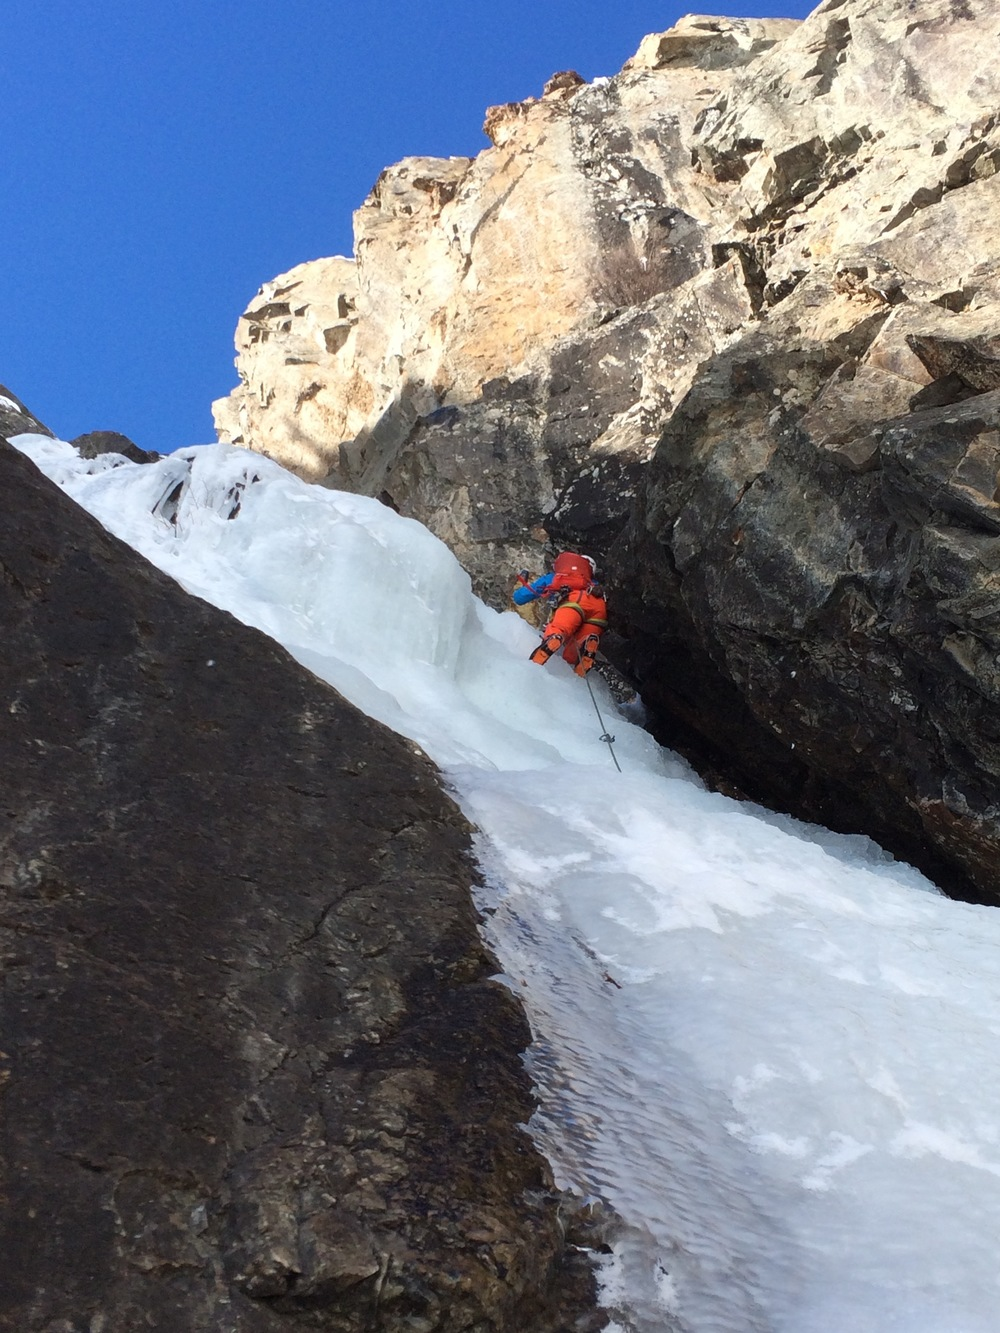 Erin in the lead on Goldrush in Eureka, CO on the AMGA Ice Instructor Course. Photo: Angela Hawse